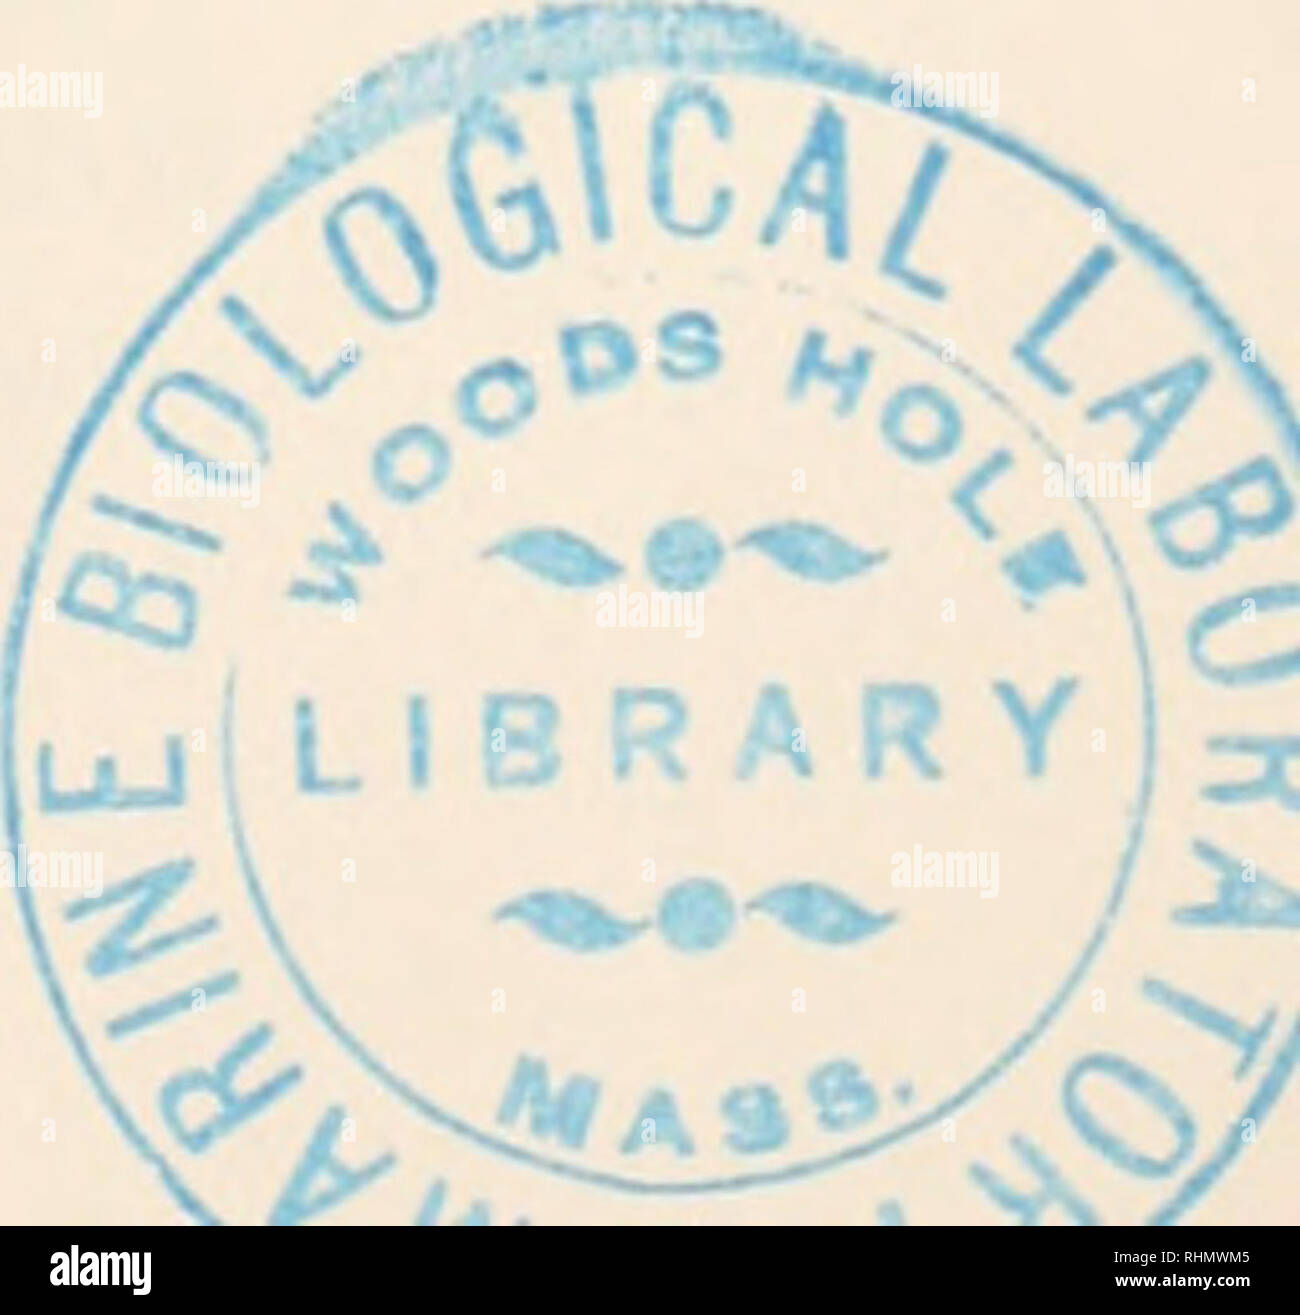 . The Biological bulletin. Biology; Zoology; Biology; Marine Biology. REPORT OF THE DIRECTOR. 49 FRY, DK. HENRY J., Washington Square College, New York City, N. Y. GAGE, PROF. S. H., Cornell University, Ithaca, New York. CARREY, PROF. W. E., Vanderbilt University Medical School, Nashville, Tennessee. GATES, DR. F. L., Rockefeller Institute, New York City, N. Y. GATES, PROF. R. RUGGLES, University of London, London, Eng- land. GEISER, DR. S. W., Southern Methodist University, Dallas, Texas. GLASER, PROF. O. C, Amherst College, Amherst, Massachusetts. GLASER, PROF. R. W., Rockefeller Institute f - Stock Image